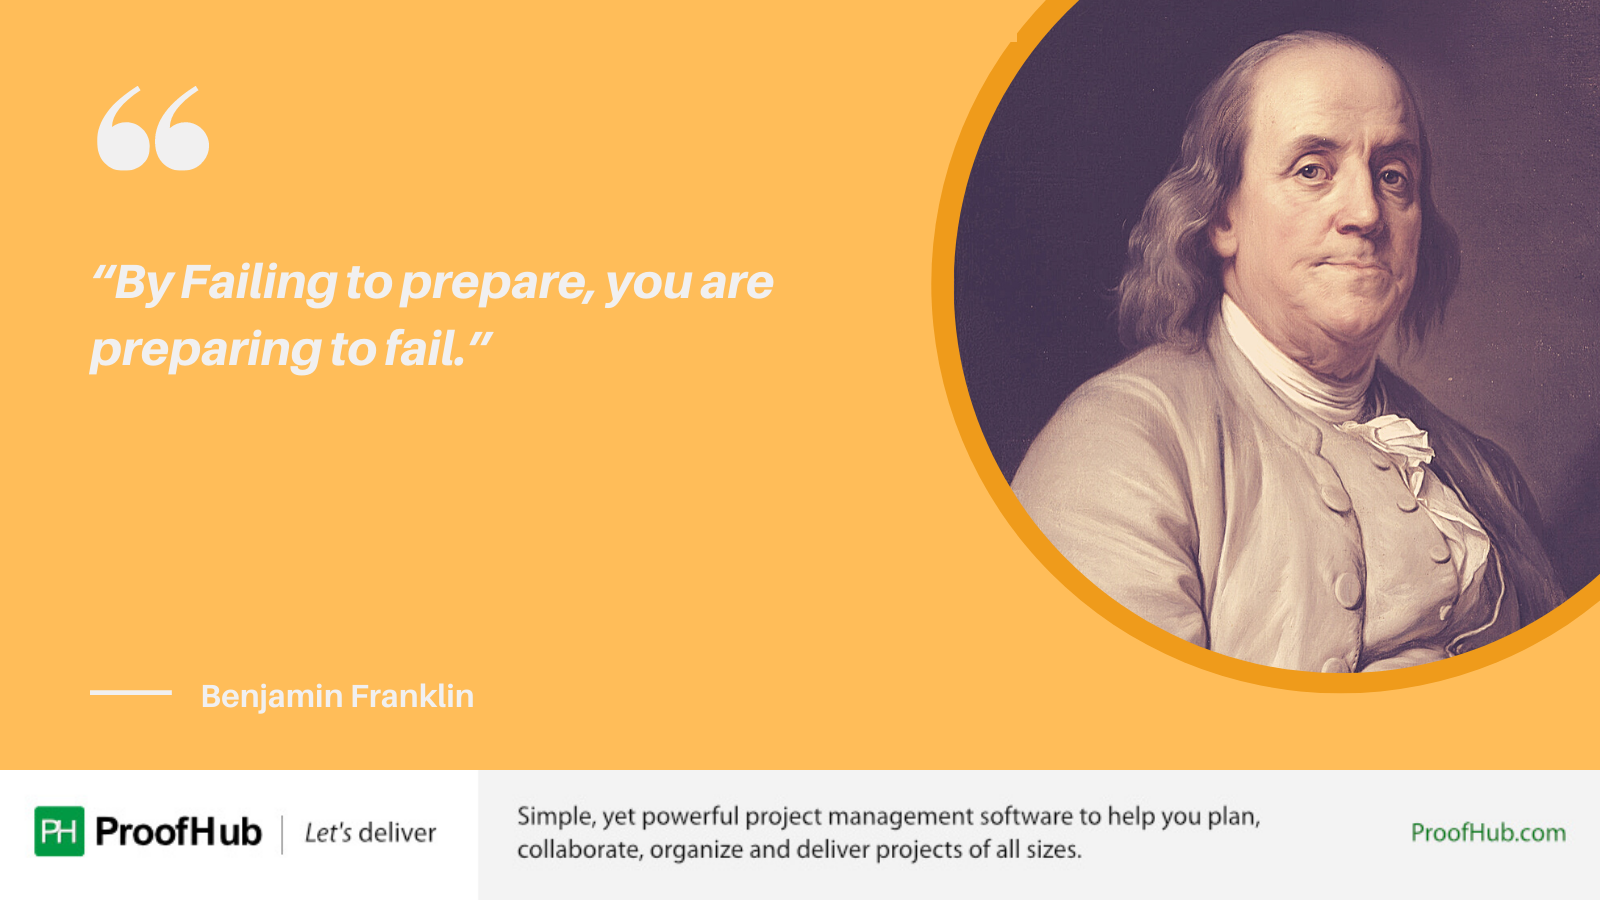 By Failing to prepare, you are preparing to fail quote by Benjamin Franklin